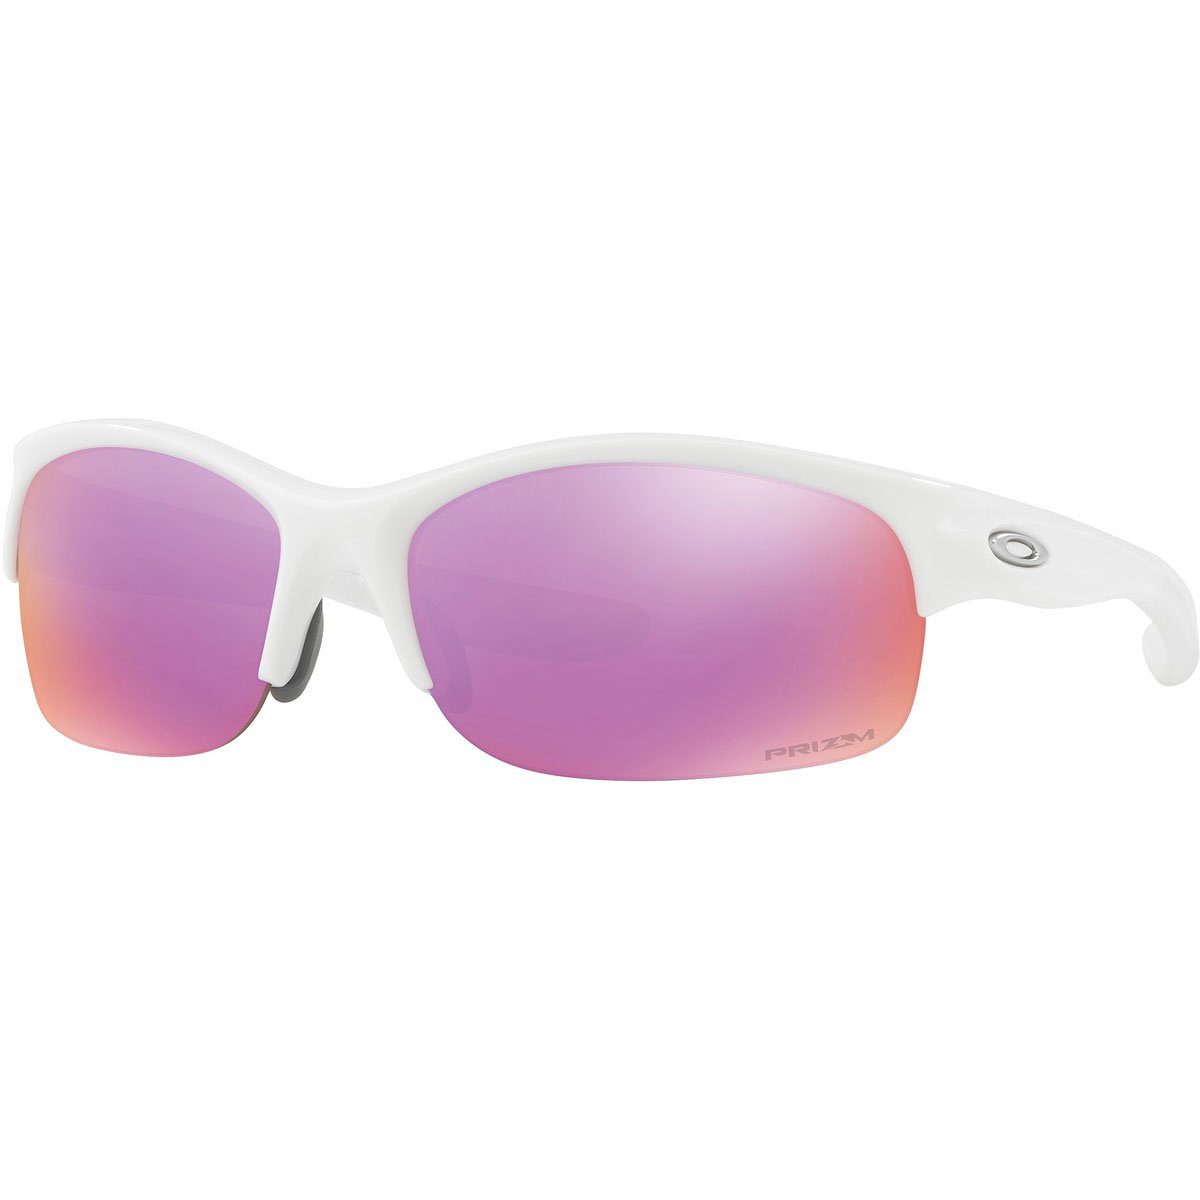 Oakley Women s OO9086 Commit Squared Pillow Sunglasses, Polished White Prizm Golf, 62 mm